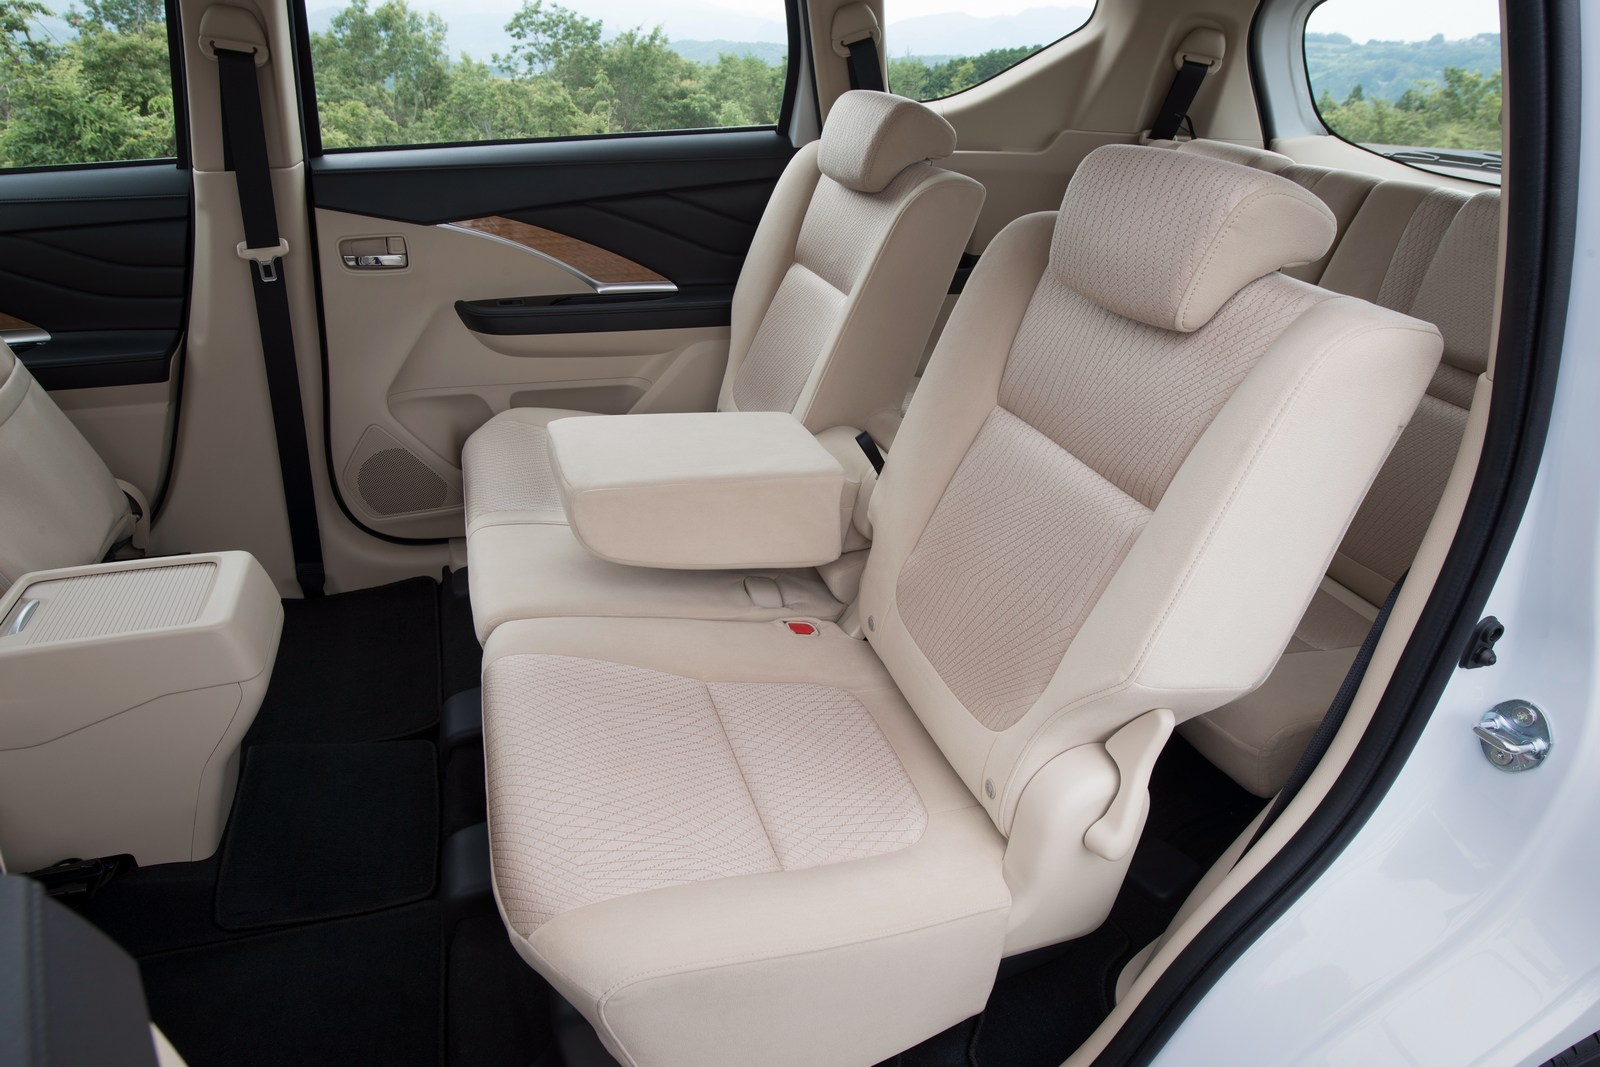 Toyota Sienna Interior >> 2018 Mitsubishi Xpander Looks Like It Came From Outer Space - autoevolution